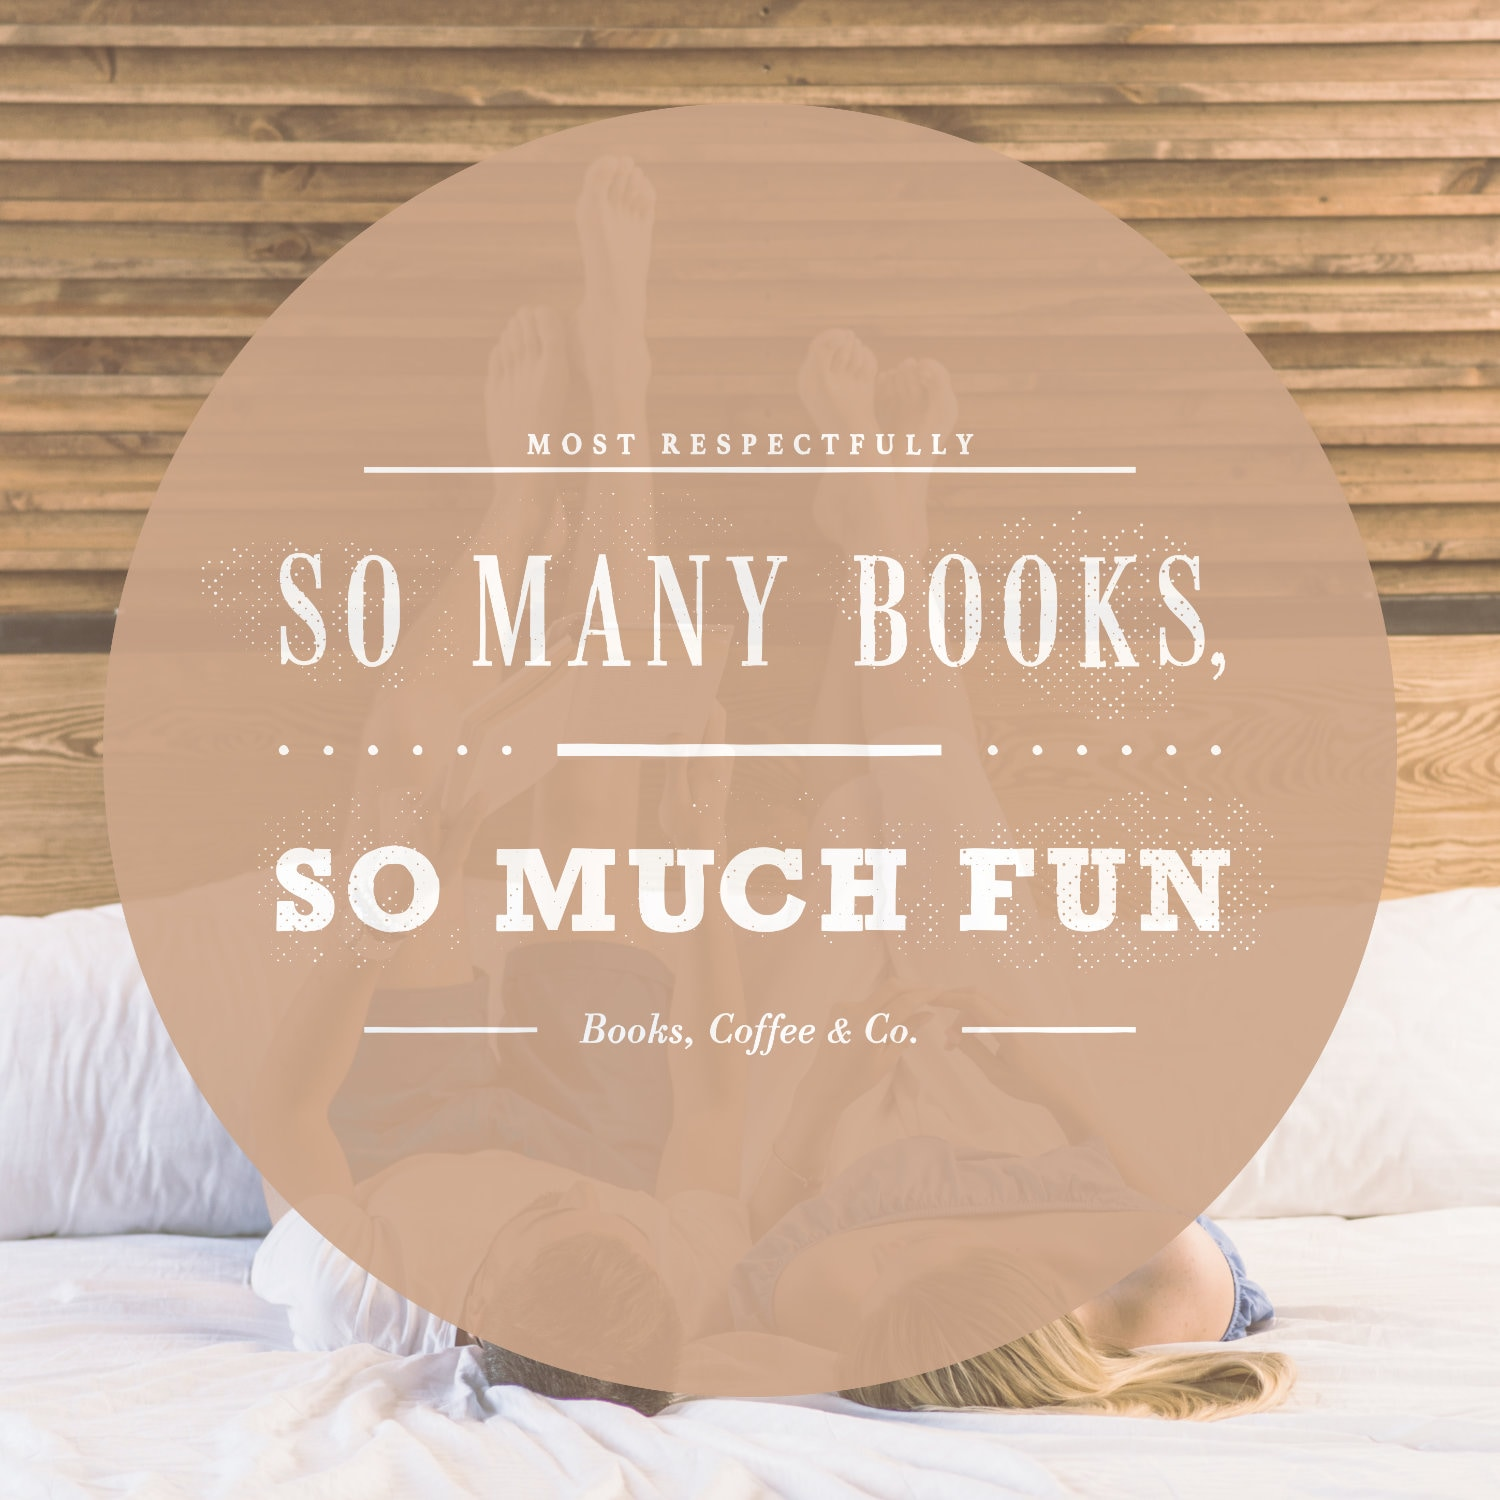 So Many Books So Much Fun poster - bookish images ideas by Piotr Kowalczyk